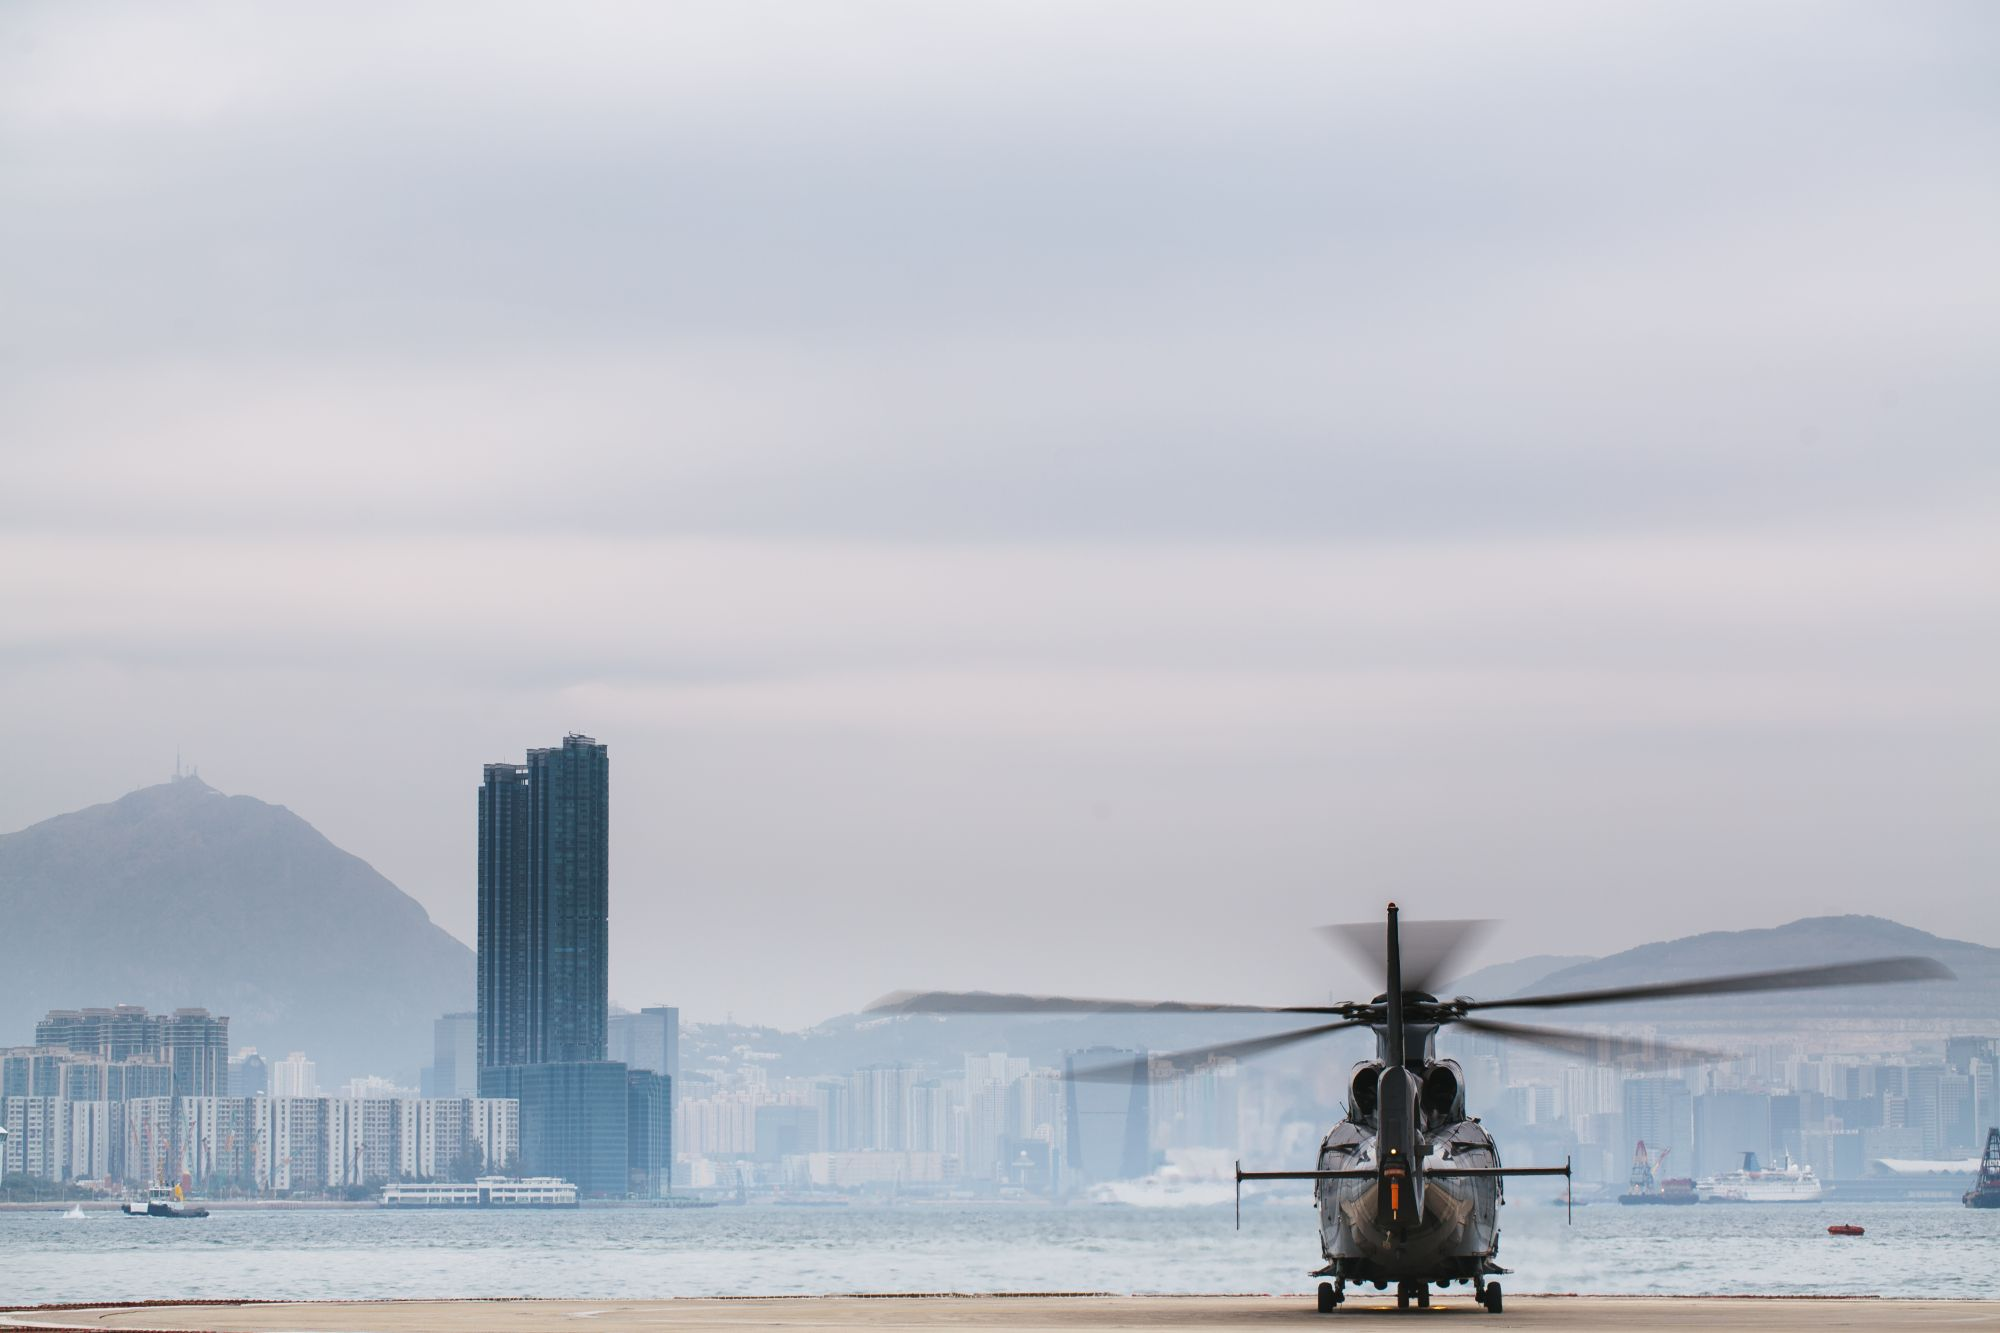 Touring helicopter ready to fly over Hong Kong.